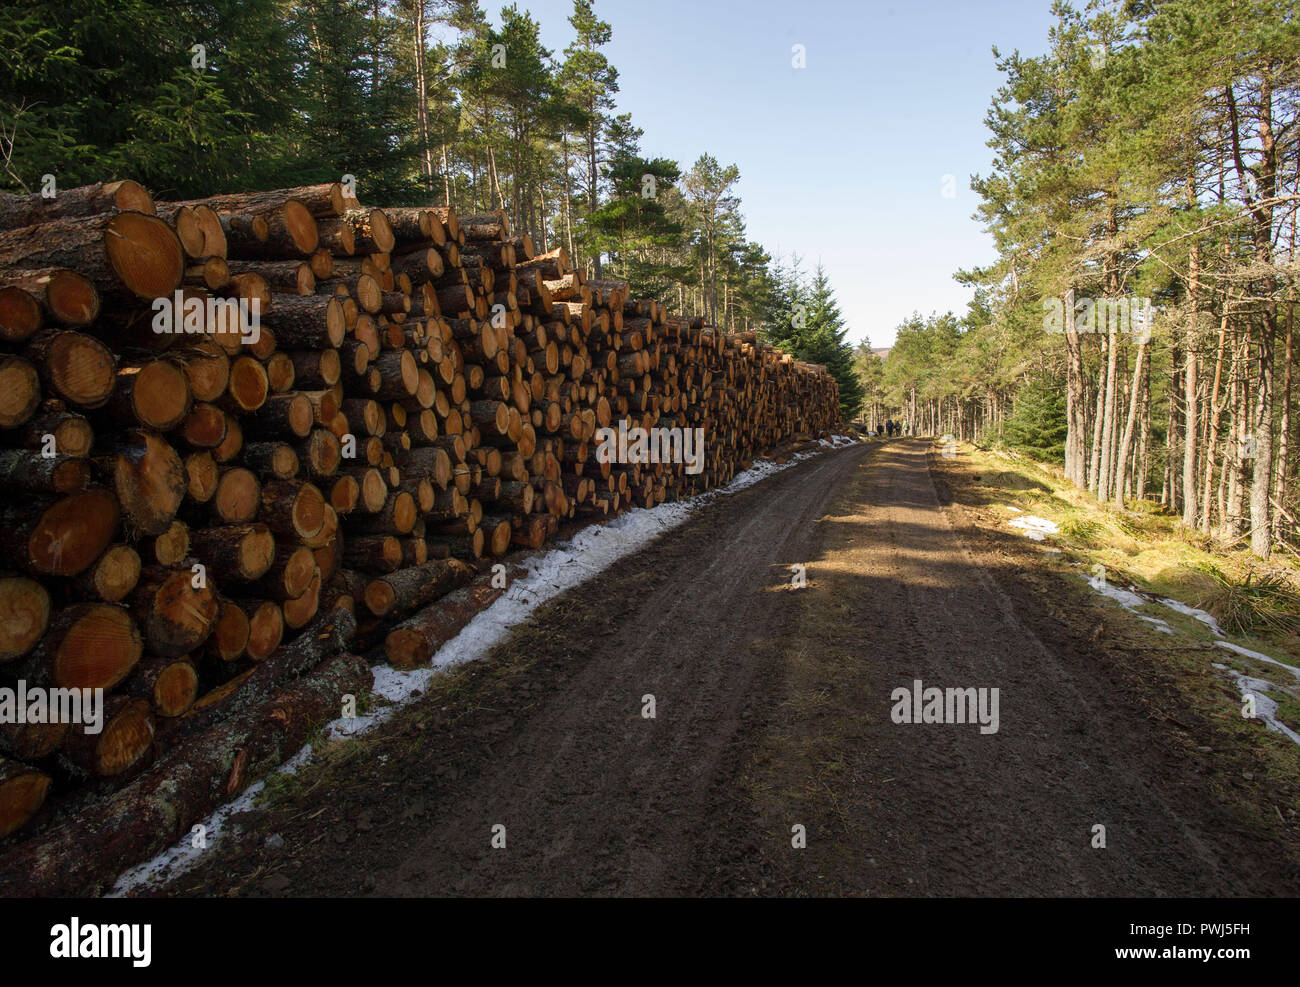 Forestry commission operation in Clashindarroch Forest near Huntly, Aberdeenshire. - Stock Image